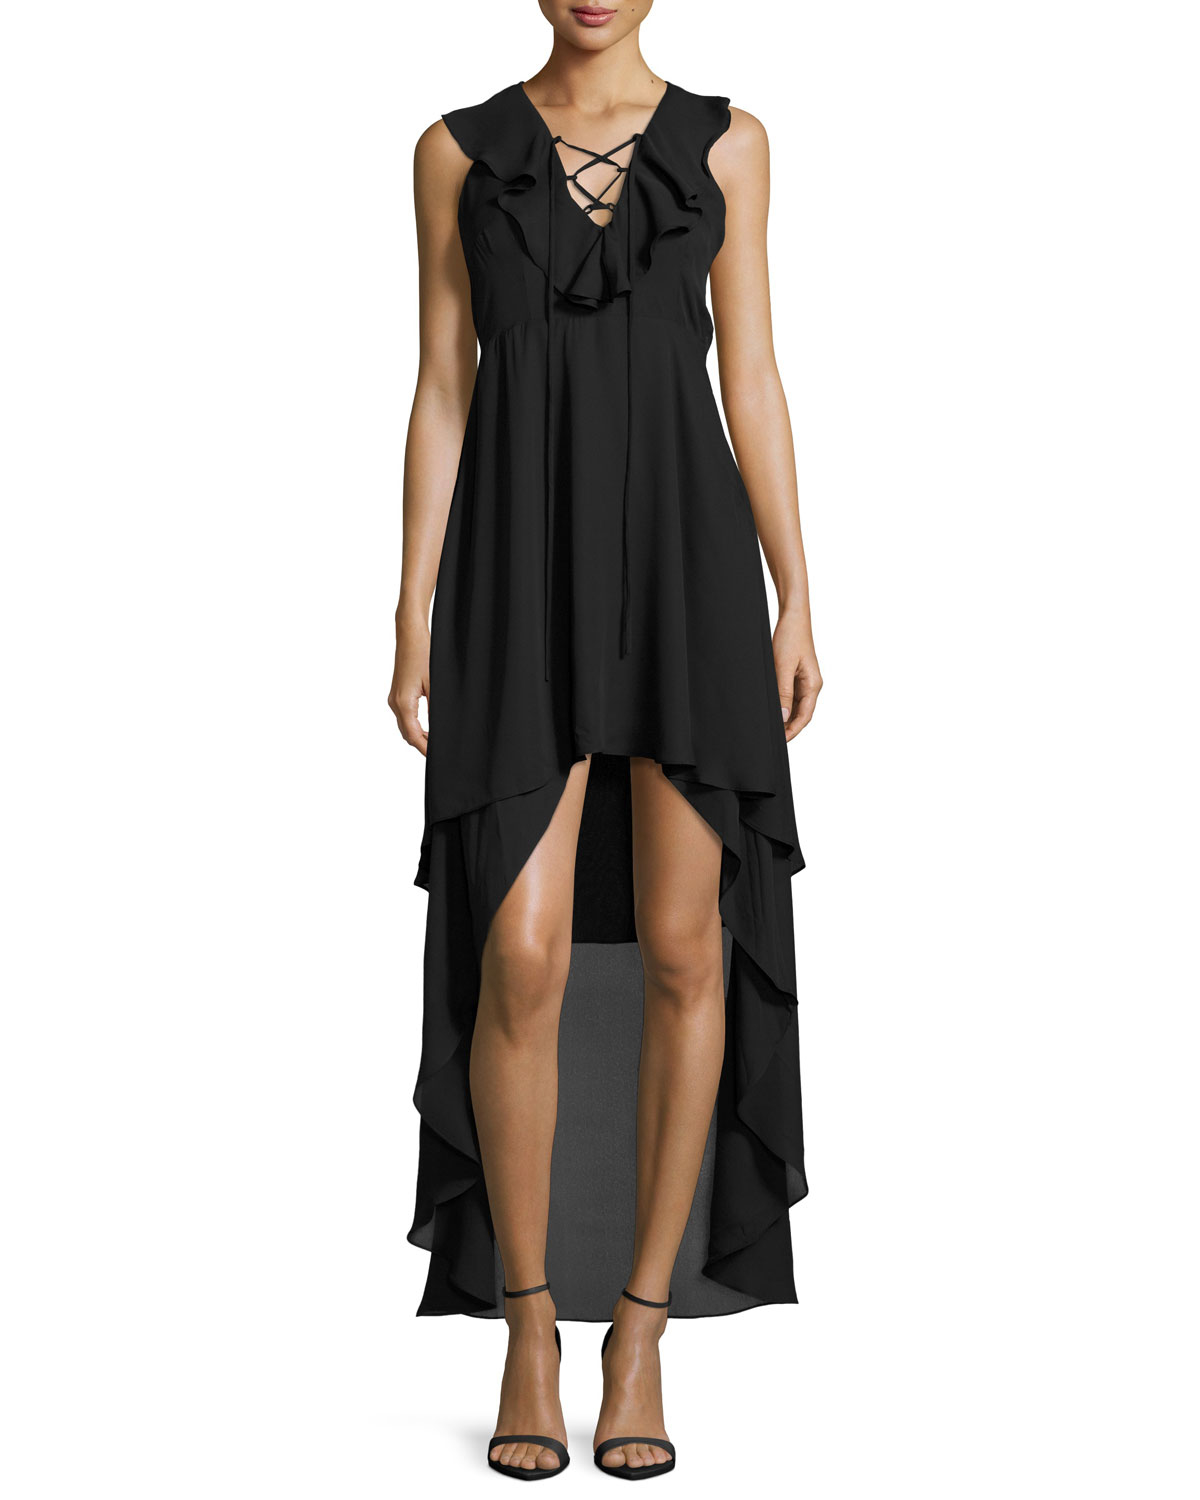 Romeo and juliet couture lace up high low ruffled dress in for High couture dresses